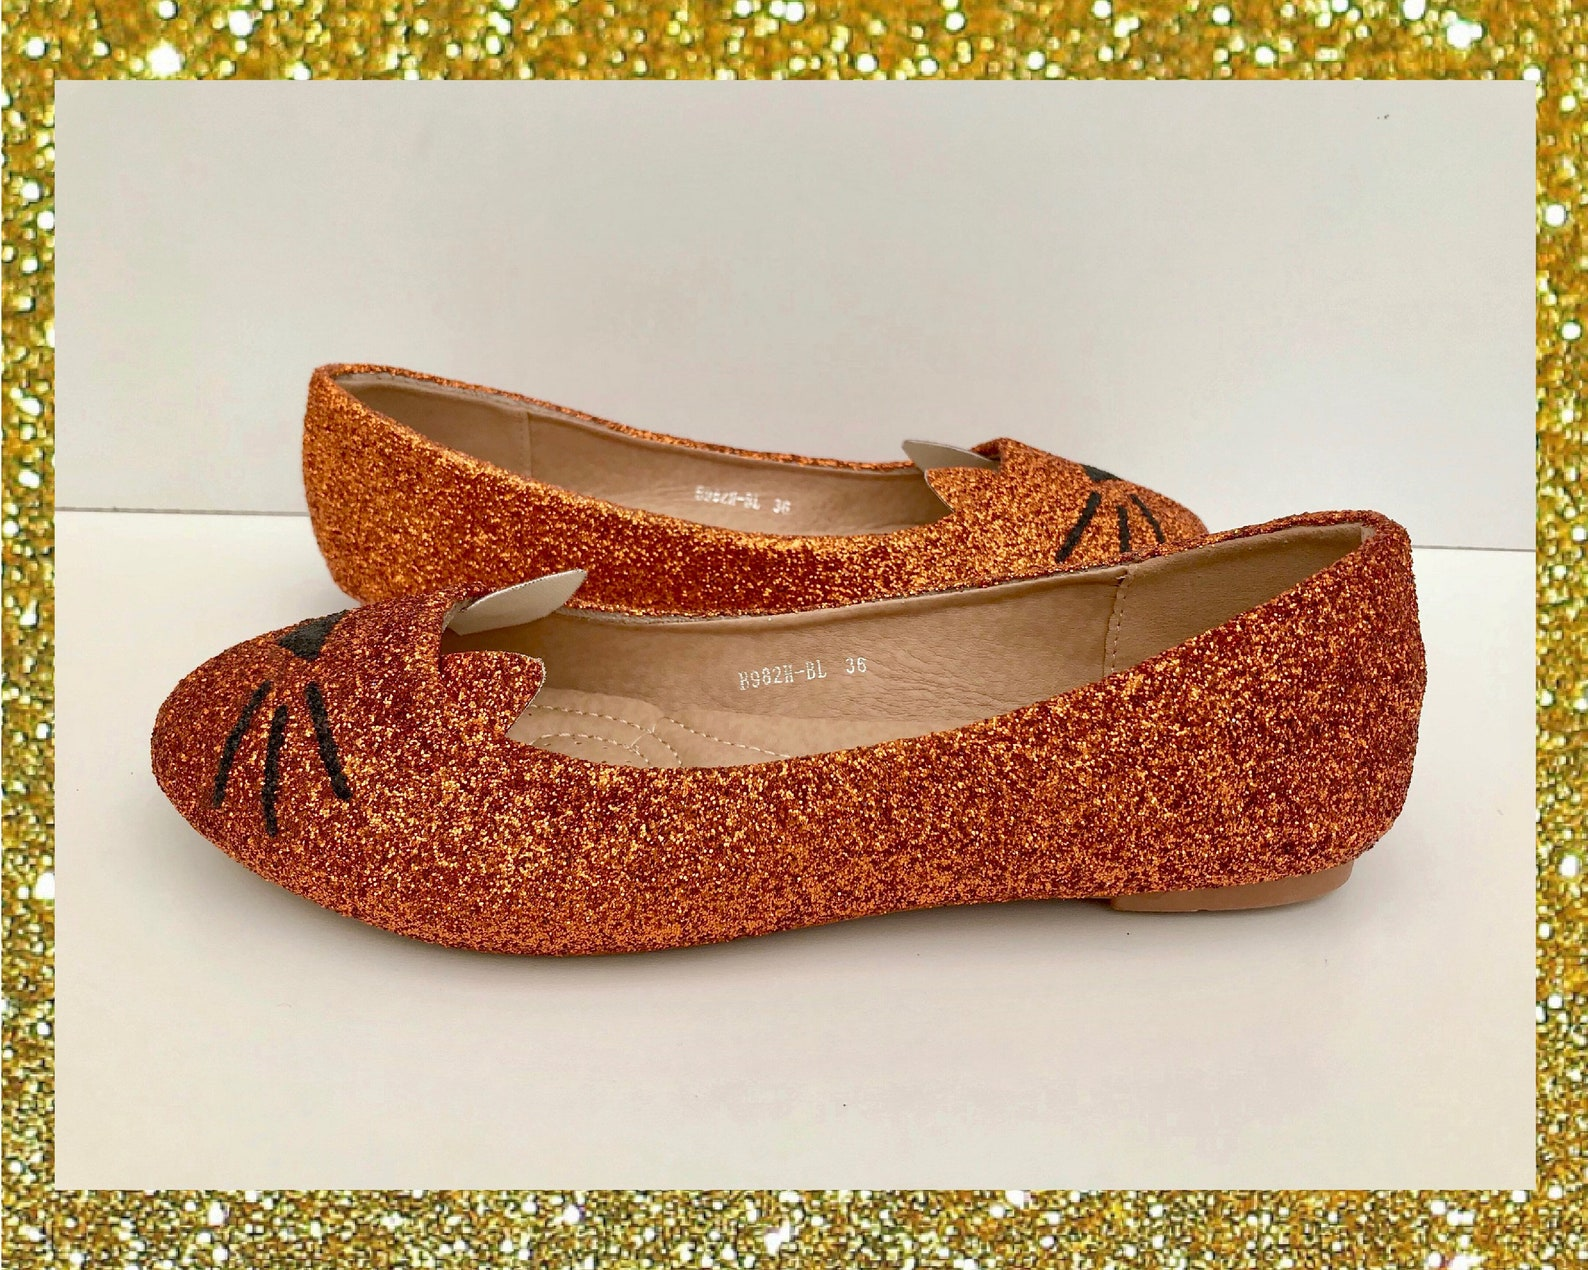 ginger cat ballet flats, cat glitter shoes, custom glitter flats, cute cat shoes womens, ginger tom gift, flat shoes for women,